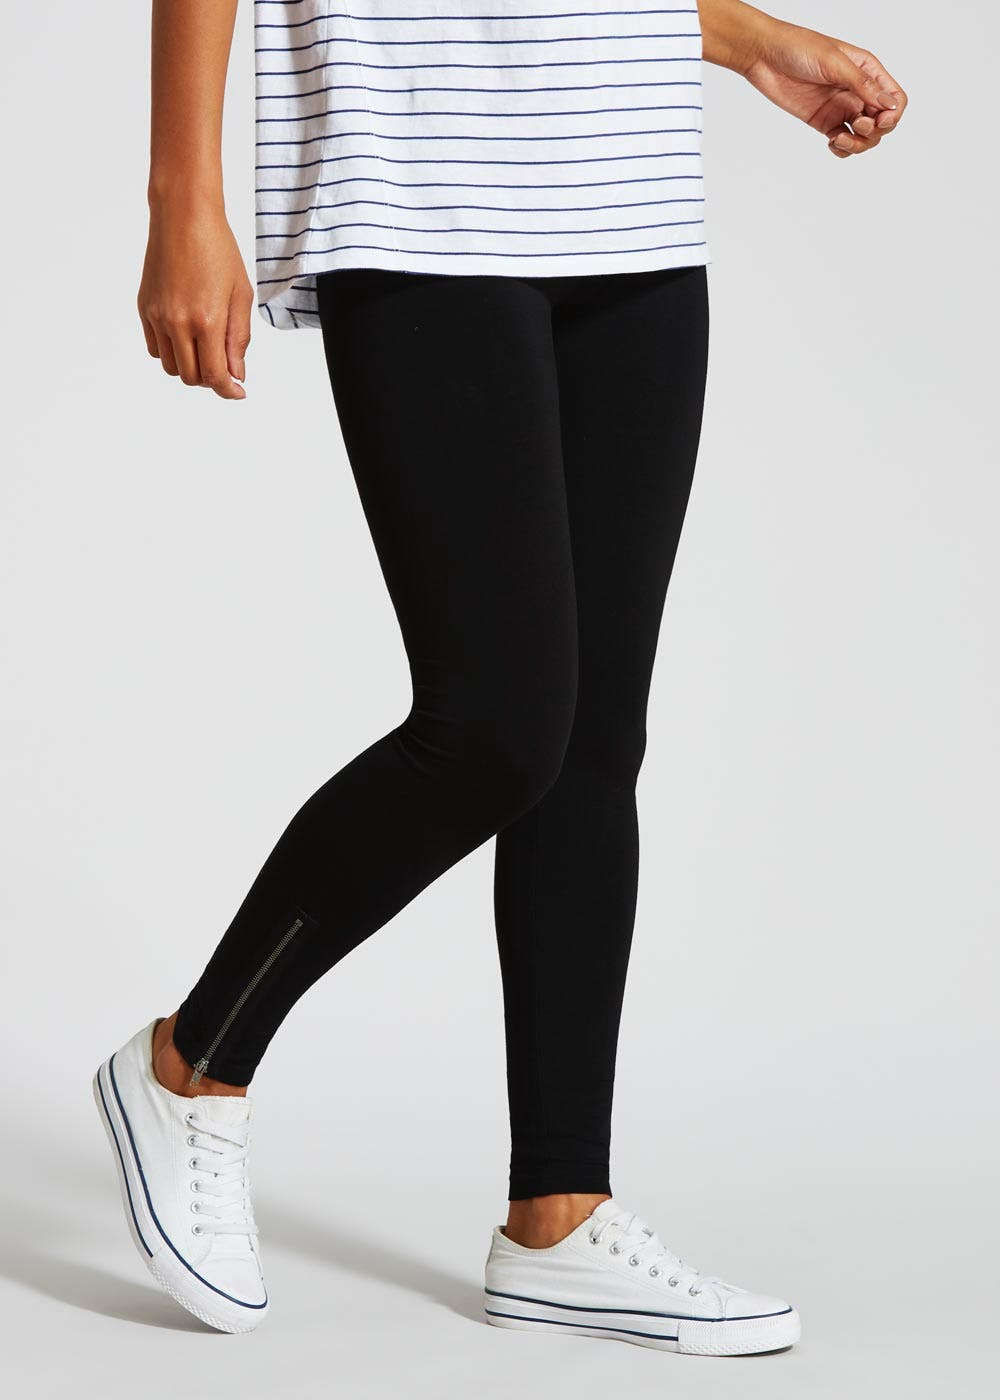 Find great deals on eBay for zip leggings. Shop with confidence.